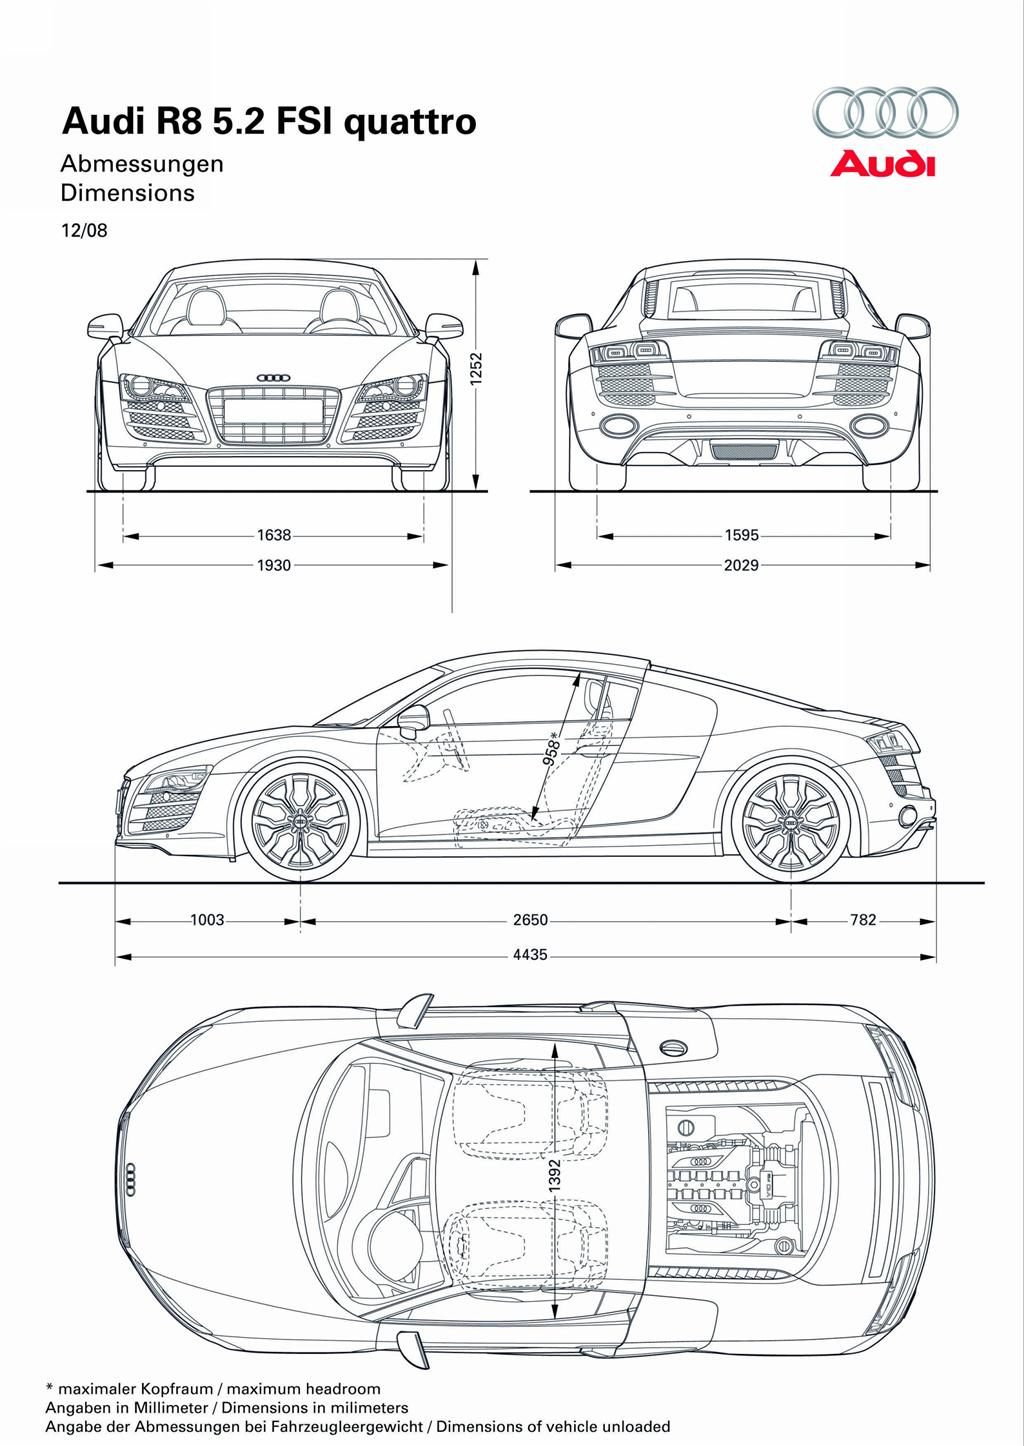 Audi R8 Diagram Not Lossing Wiring Awe Tt Rs Switchpath Exhaust System Eurocar News 2009 5 2 Fsi Quattro Image Photo 17 Of 23 Rh Conceptcarz Com Fuse Coil